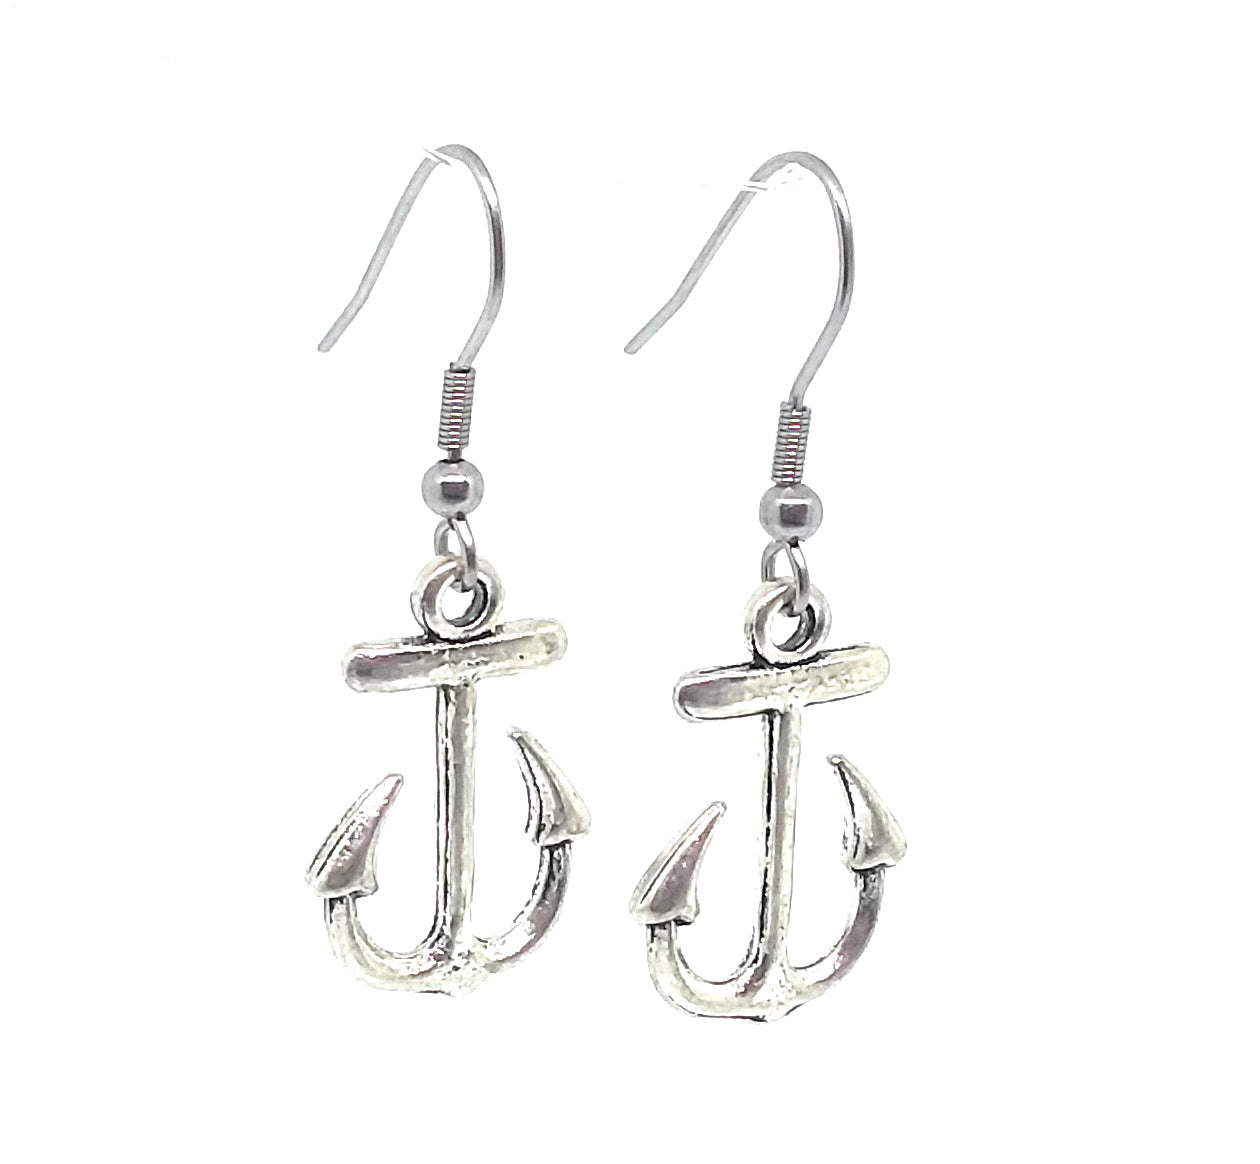 Anchor Charm Dangle Earrings with Stainless Steel Ear Wires